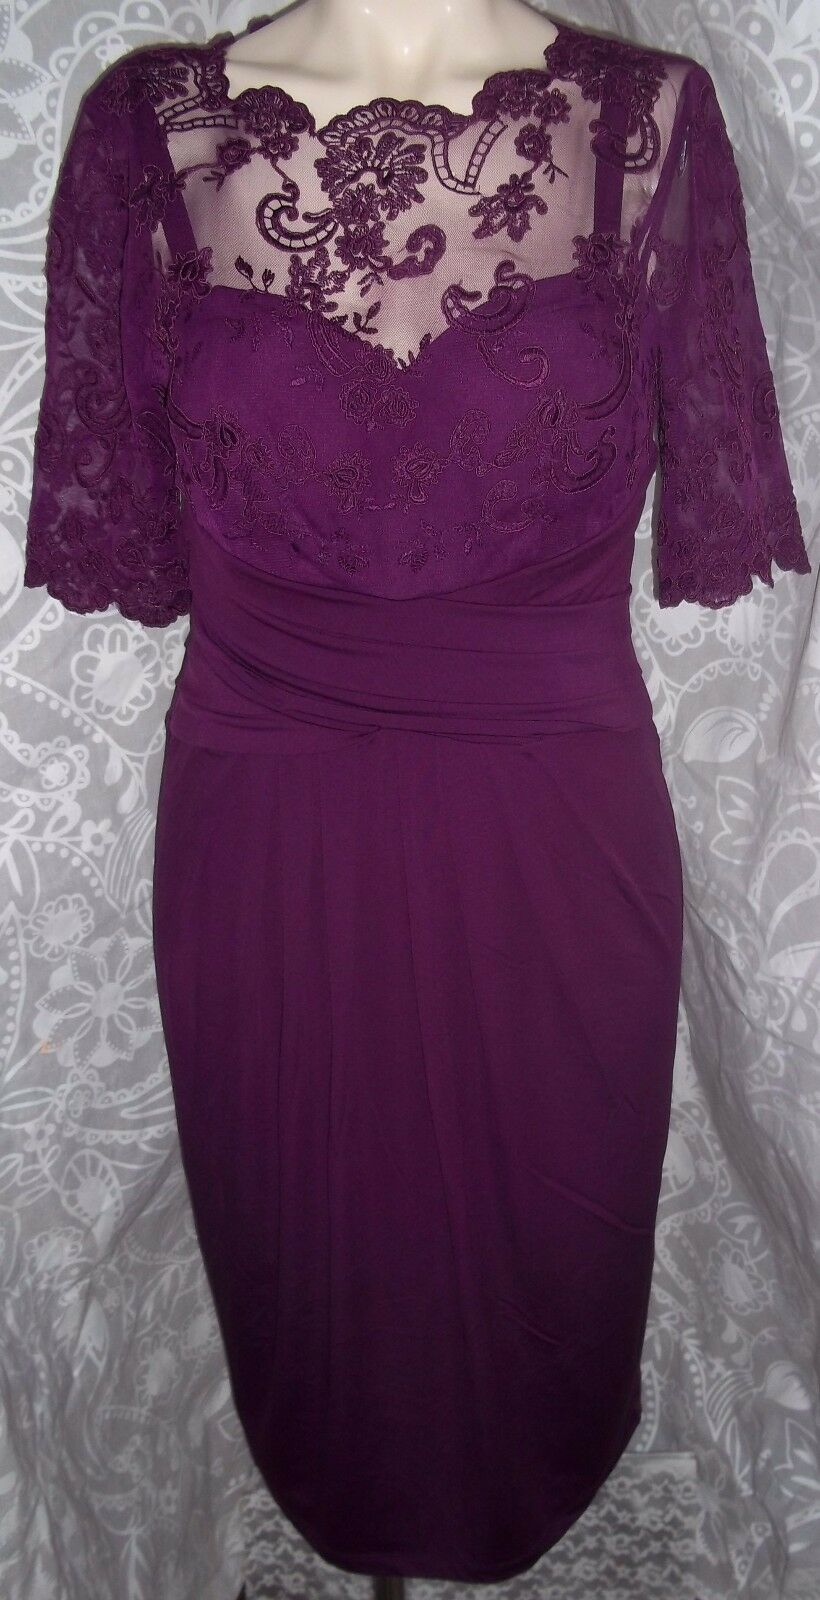 0bf7212172aabc Kaliko Claret Lace Dress with Discreet Support Ruche RRP & nroqzn925 ...